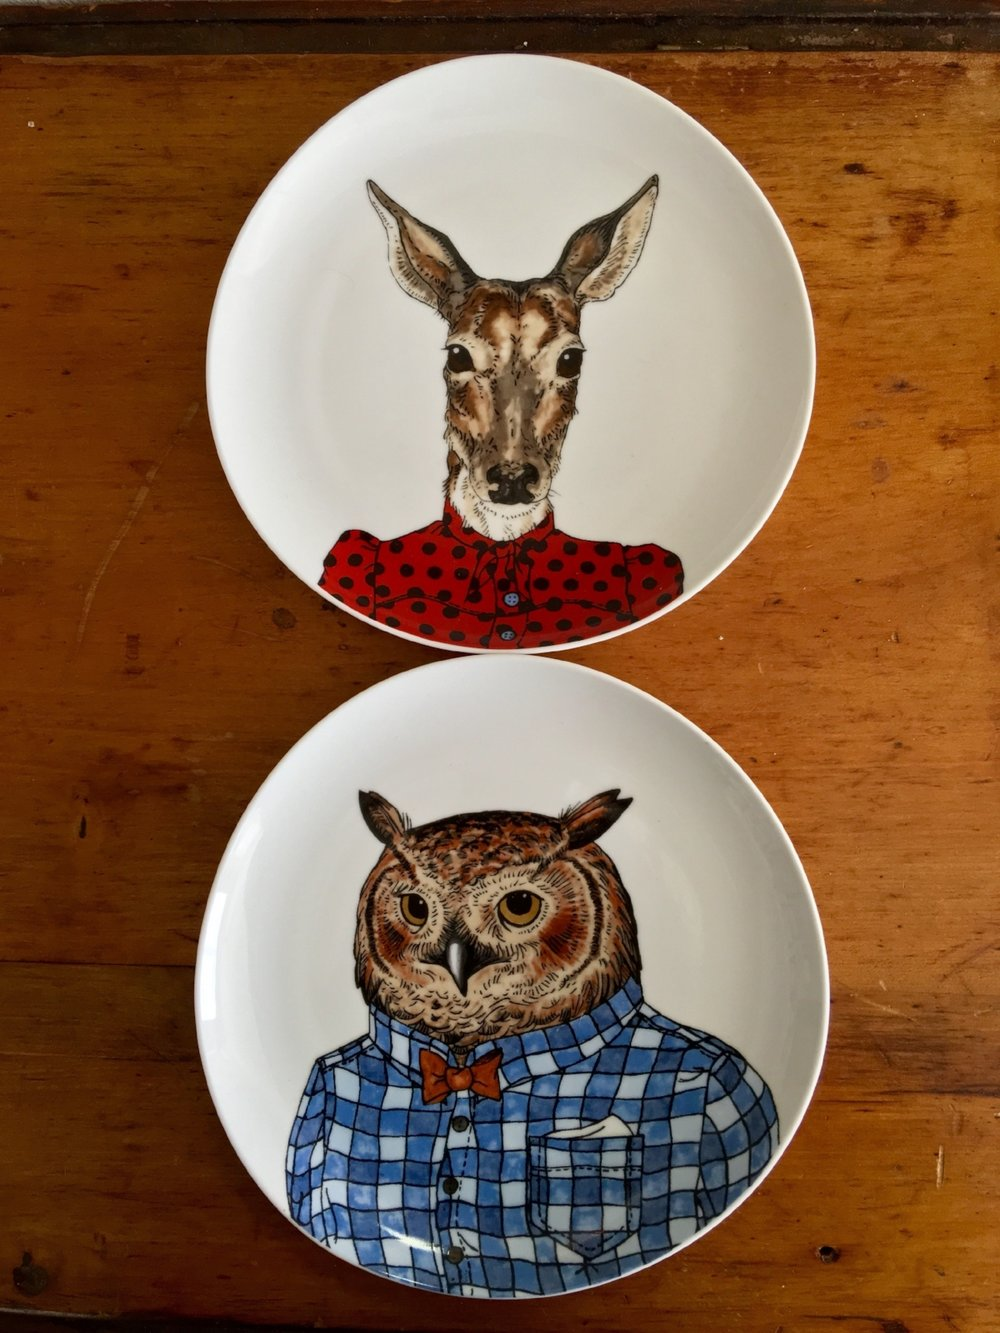 These animal plates are from West Elm. Kurt and I collected them not long after we moved to   Florida! The Owl and the Doe felt rather patriotic in their red and blue, making them easy choices for the meal!